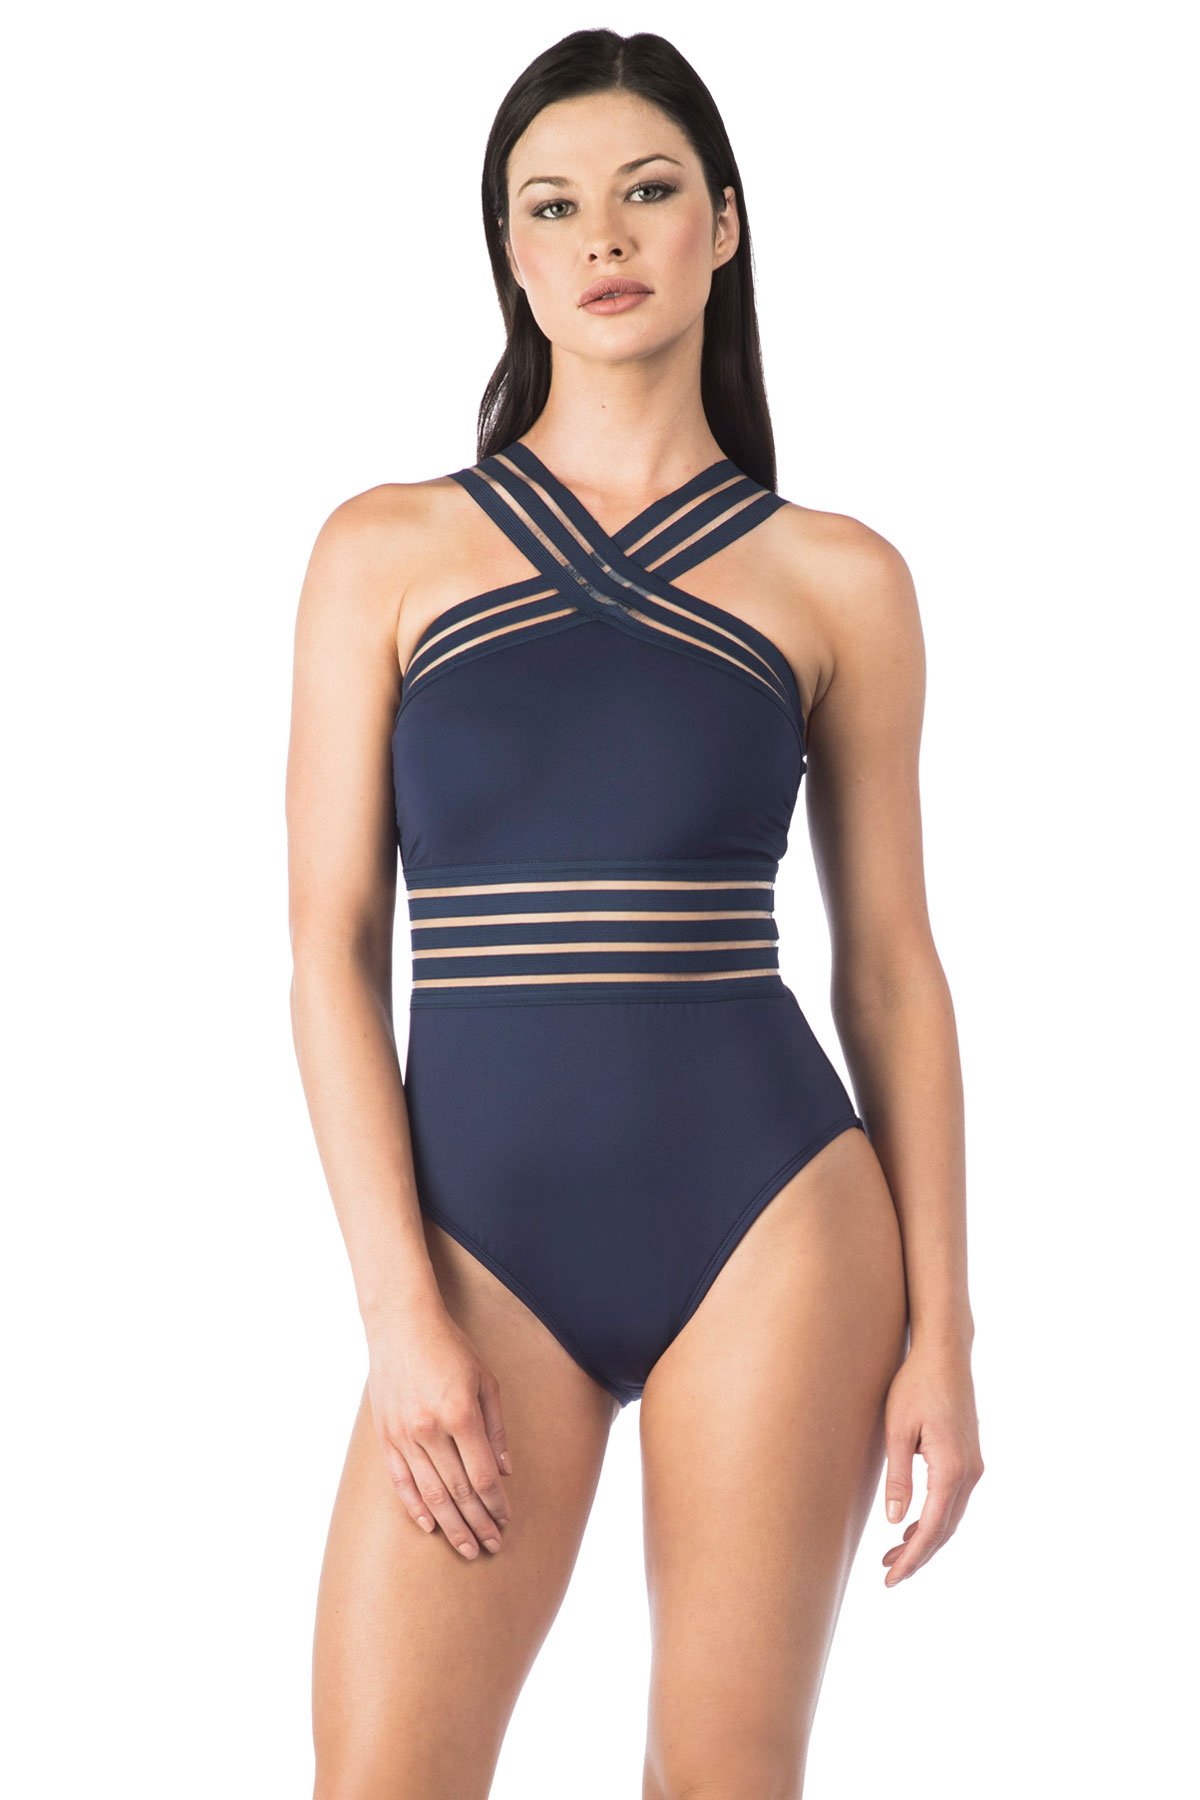 Strappy High Neck One Piece Swimsuit - Midnight 5